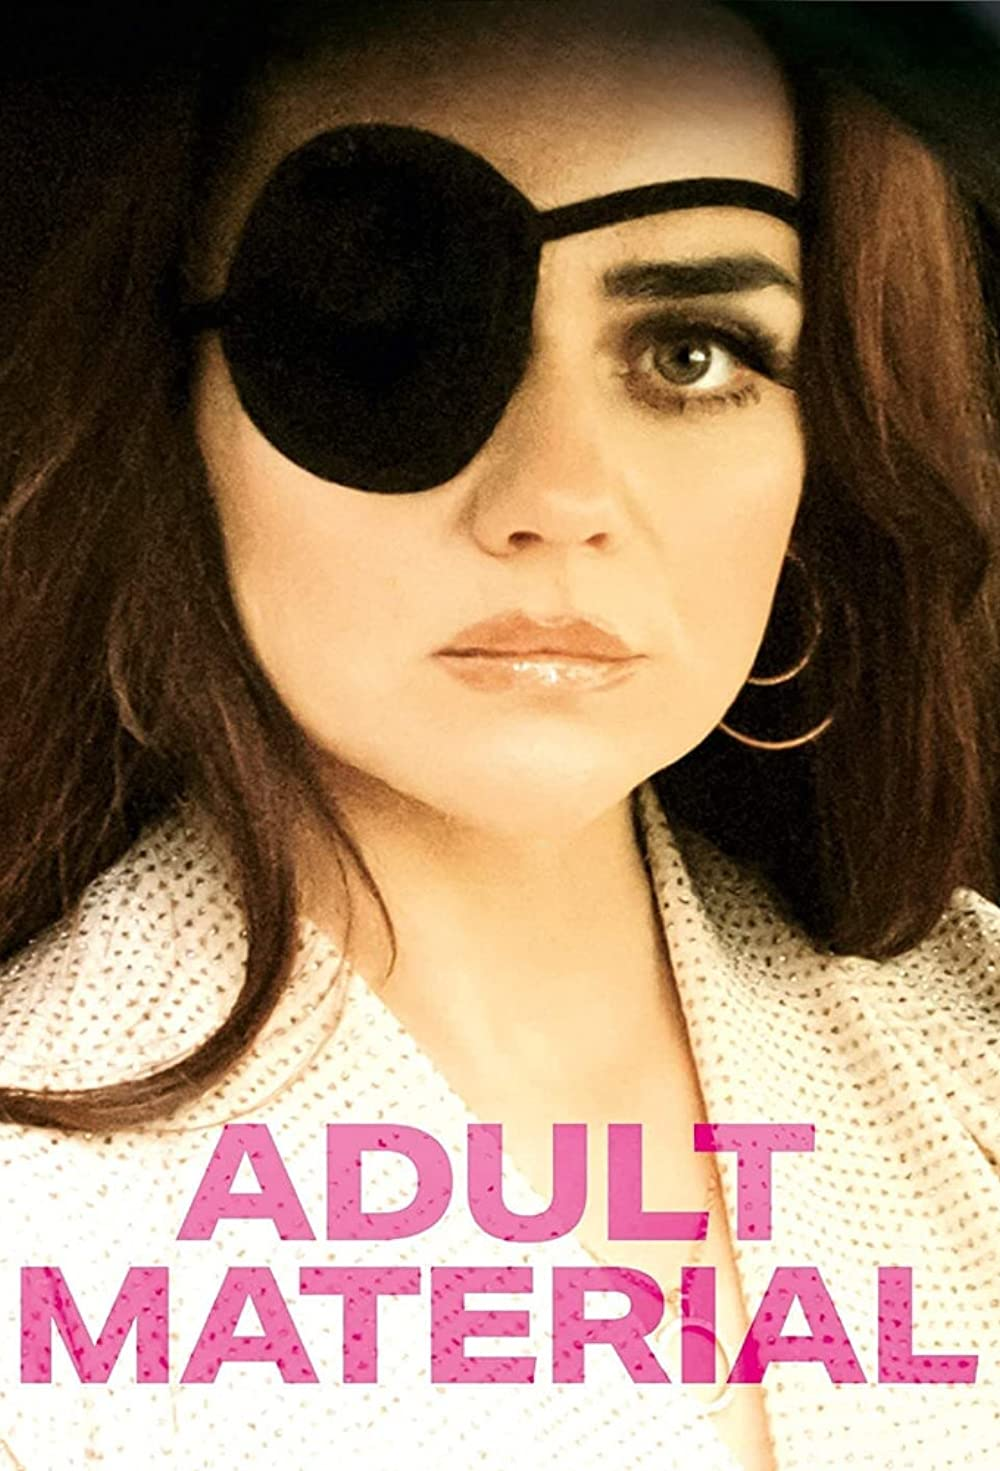 Adult Material (2020) UNRATED 480p HEVC HDRip English S01 Complete Hot Web Series x265 AAC ESubs [550MB]